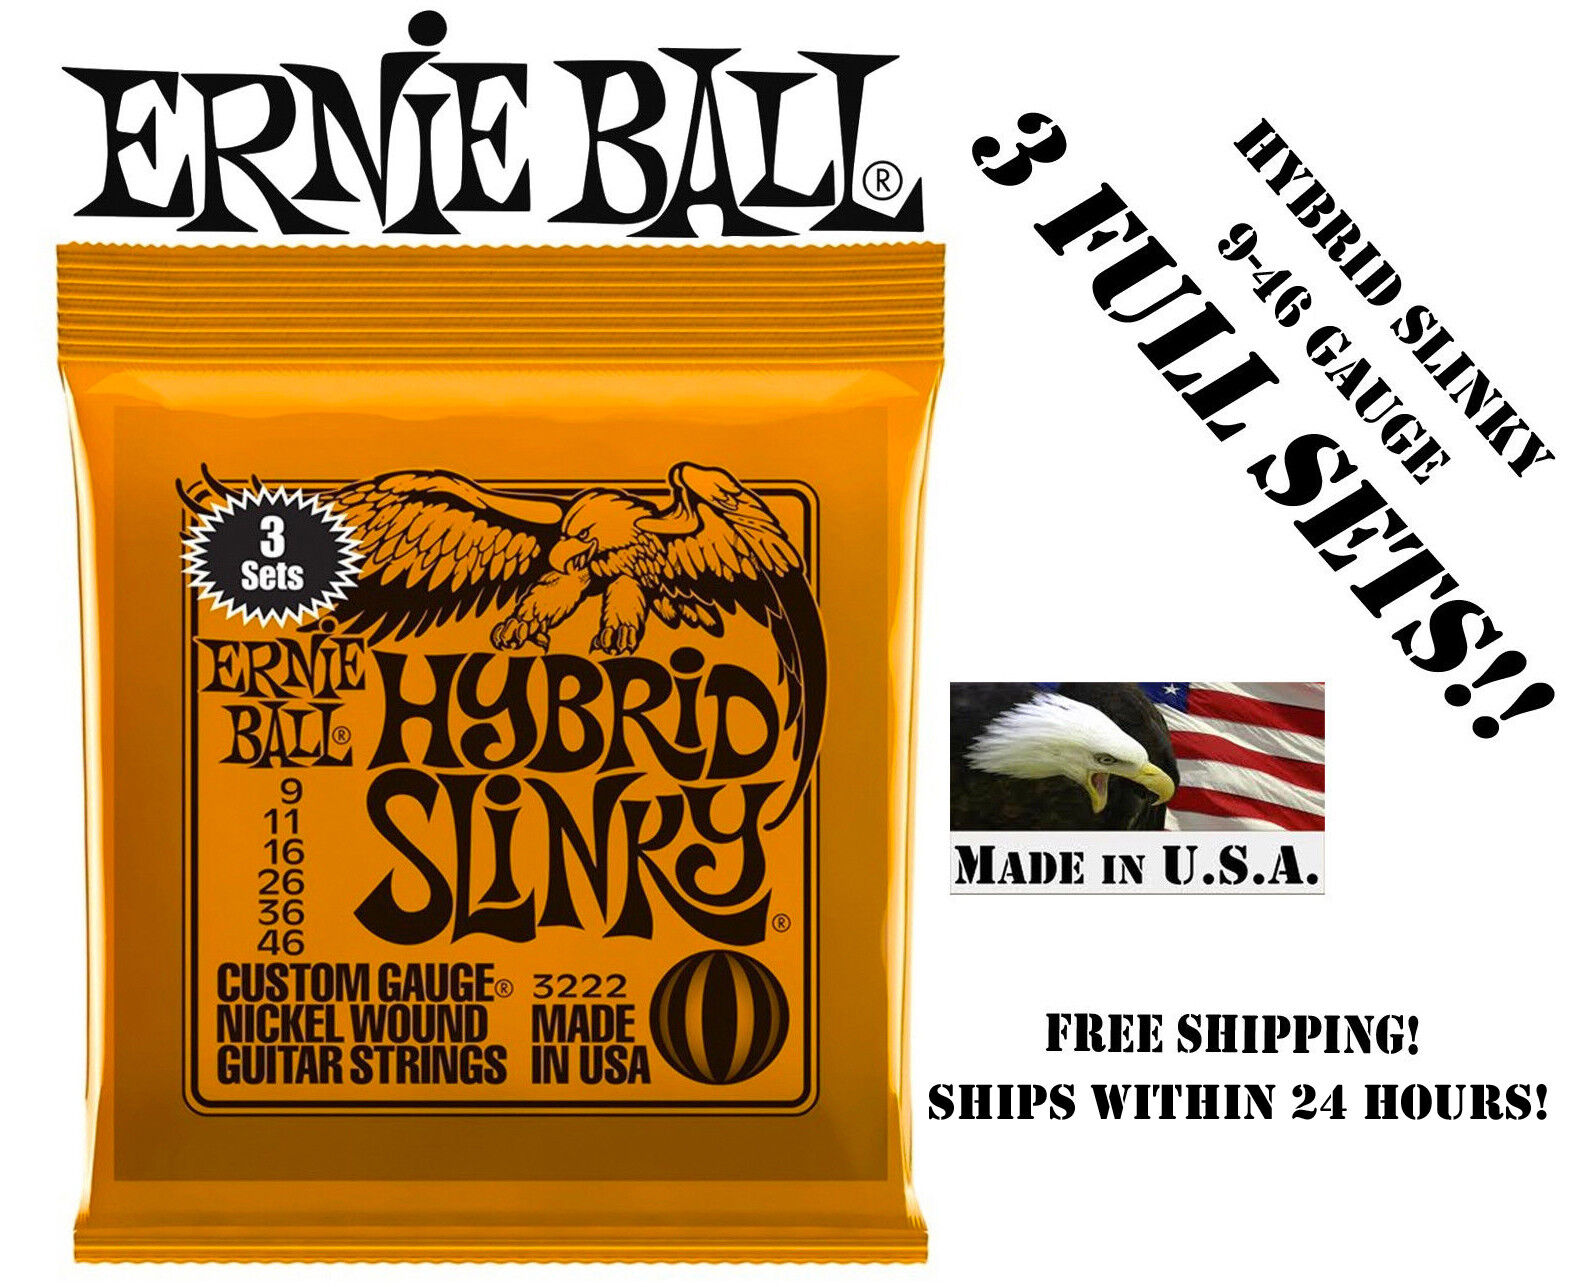 Купить Ernie Ball 2222 - **3 SETS ERNIE BALL 2222 HYBRID SLINKY ELECTRIC GUITAR STRINGS 9-46**